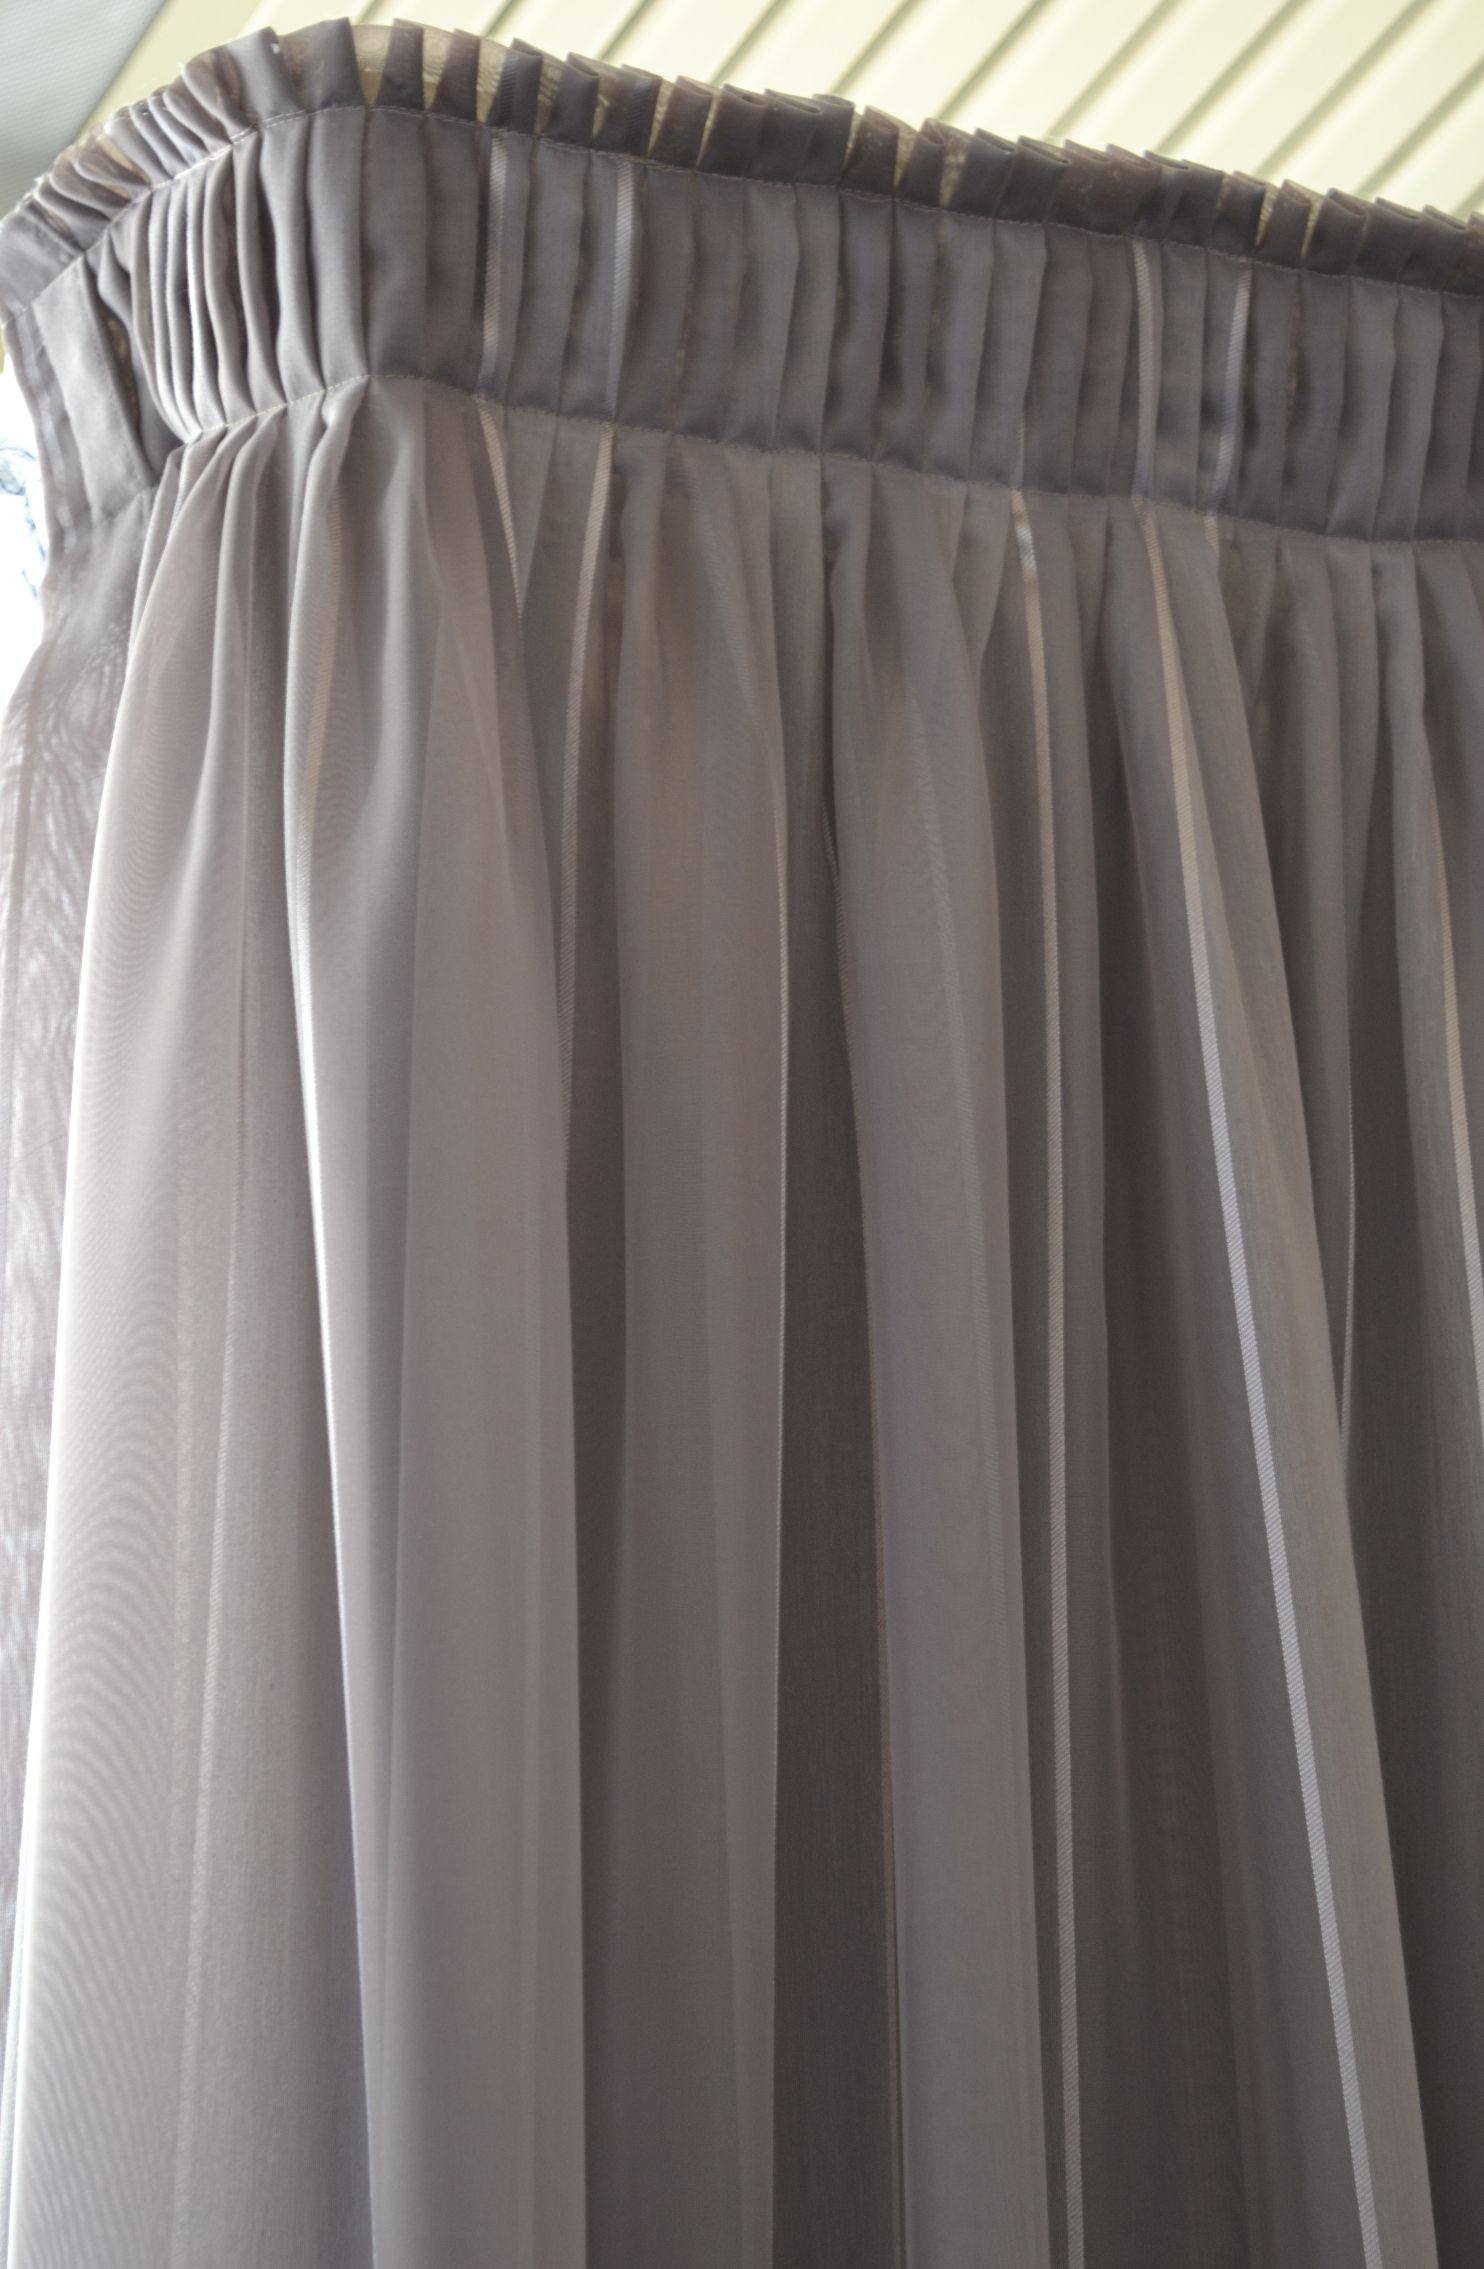 Knife Pleat Sheer Curtain Curtains Pinterest Sheer Curtains Knives And Window